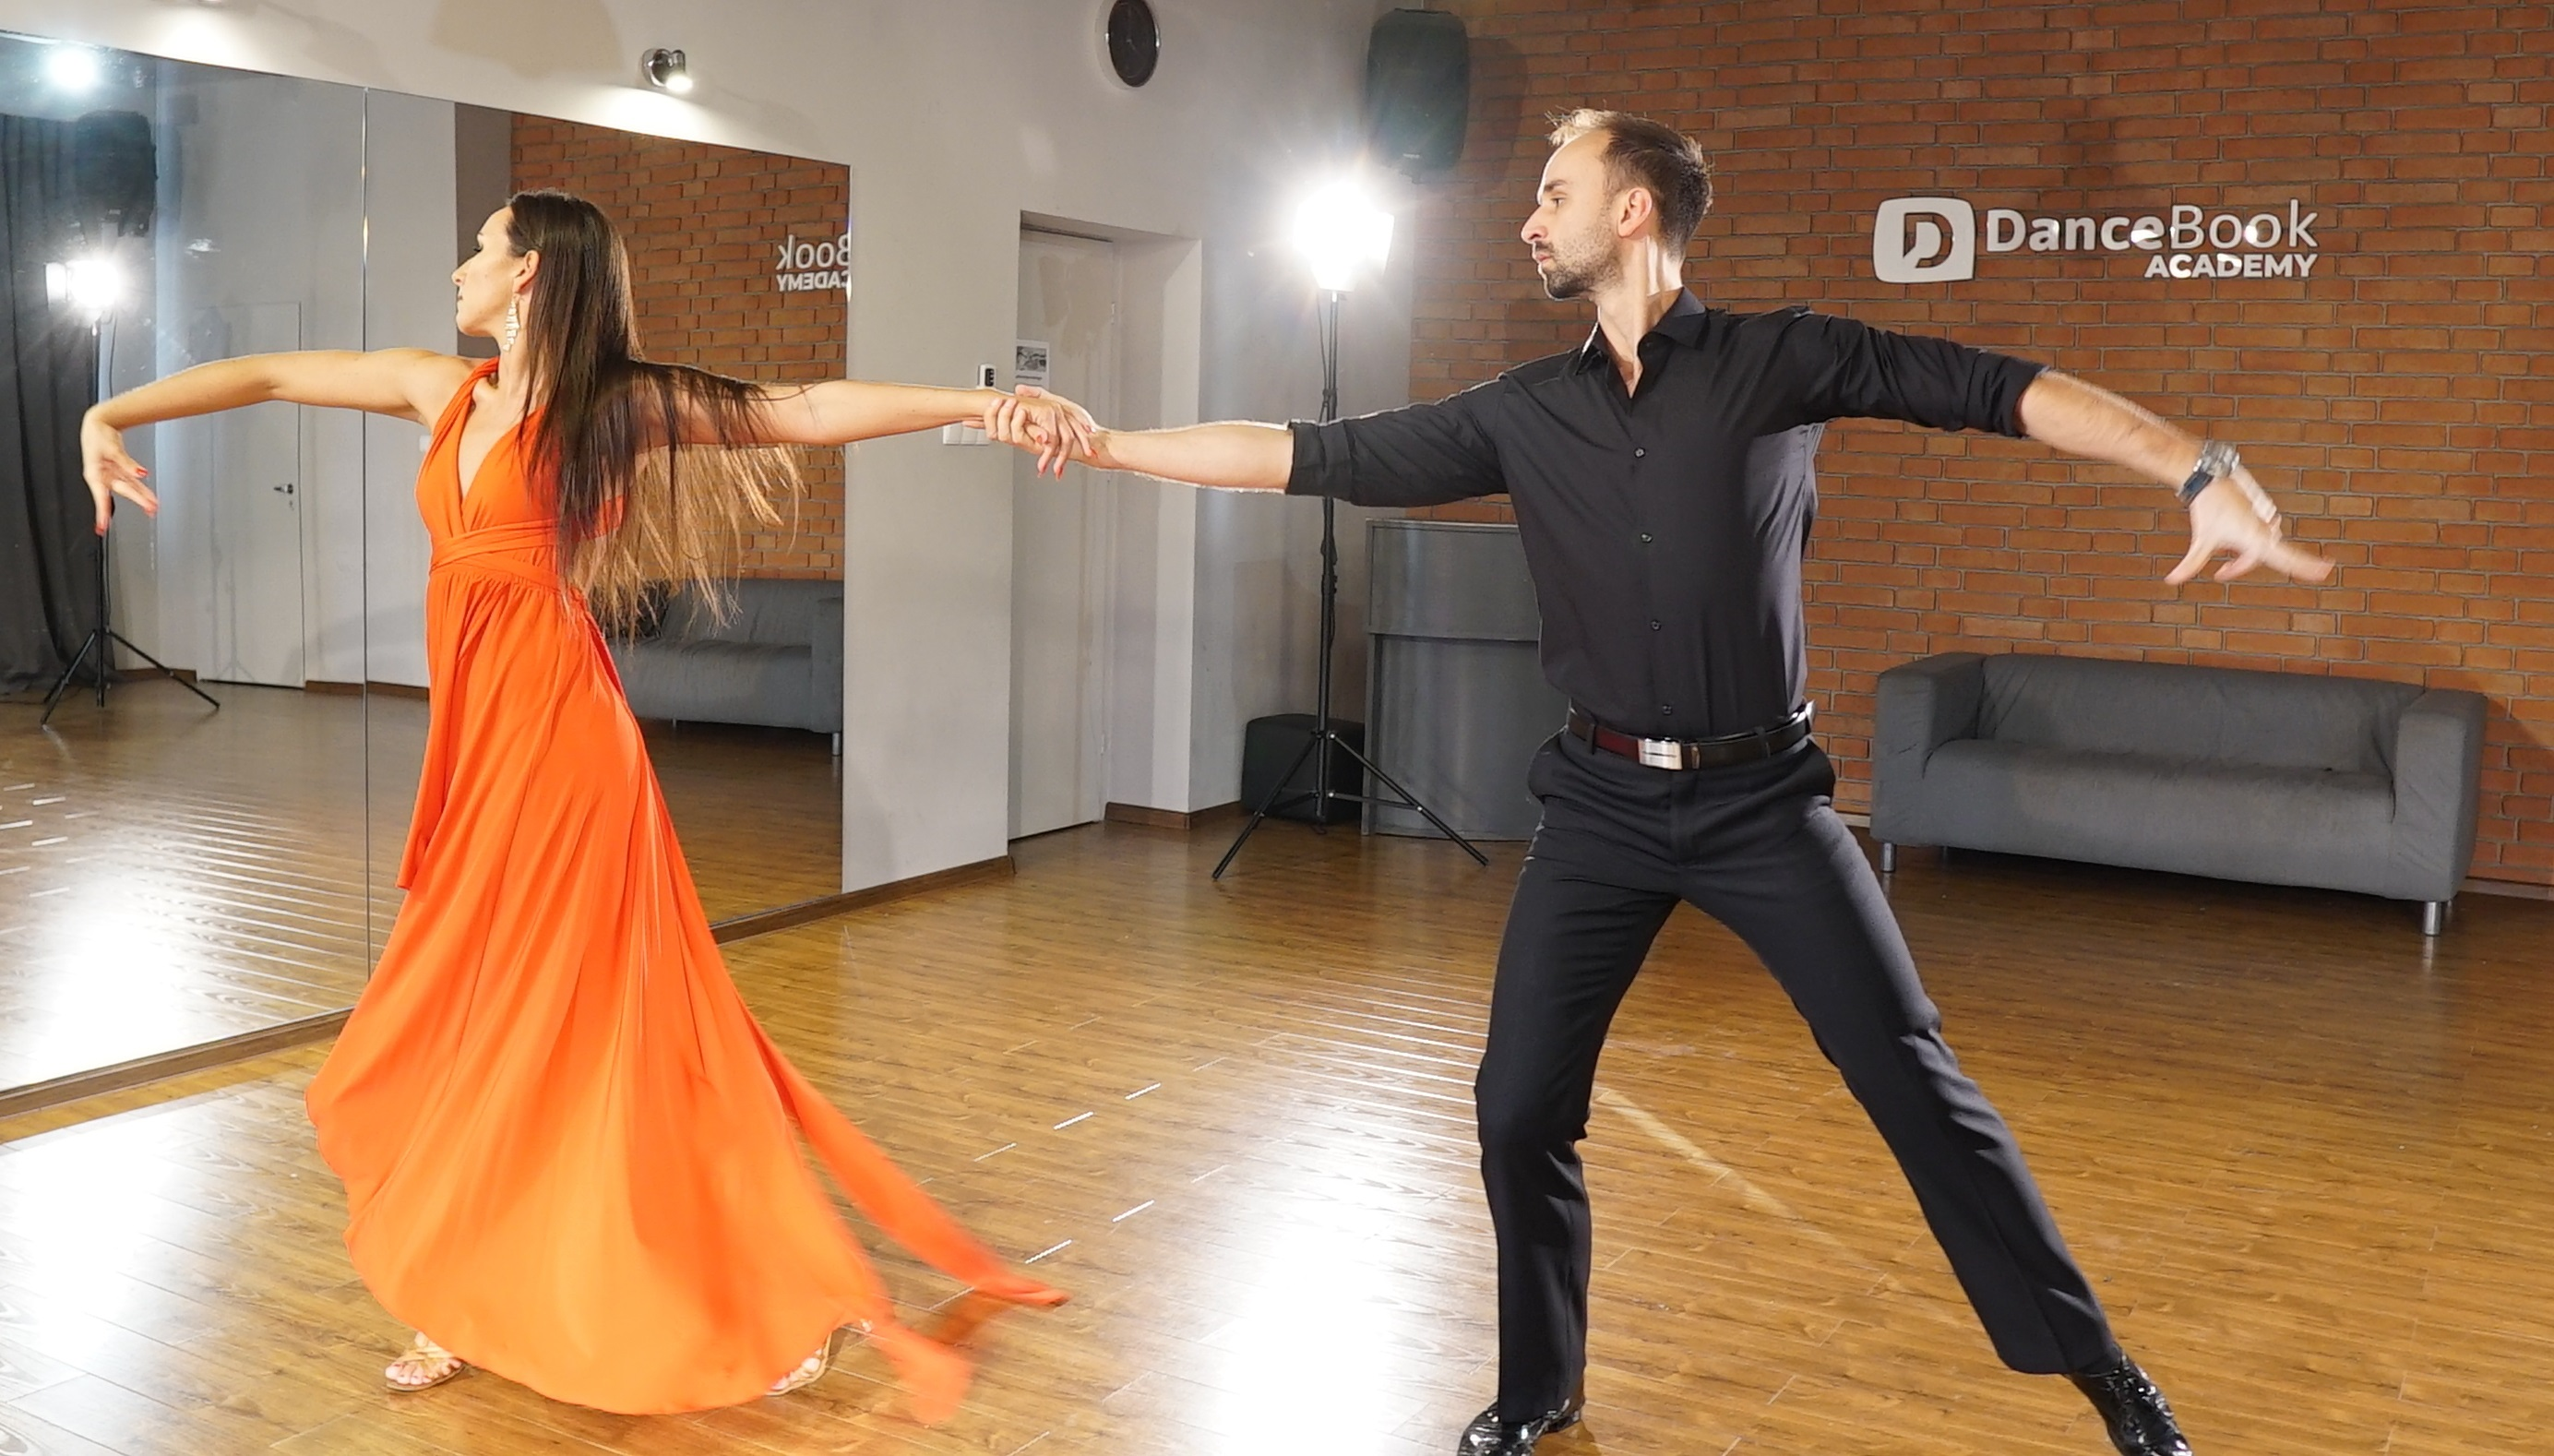 PREMIERA - Coming Soon - New Wedding Dance Choreography